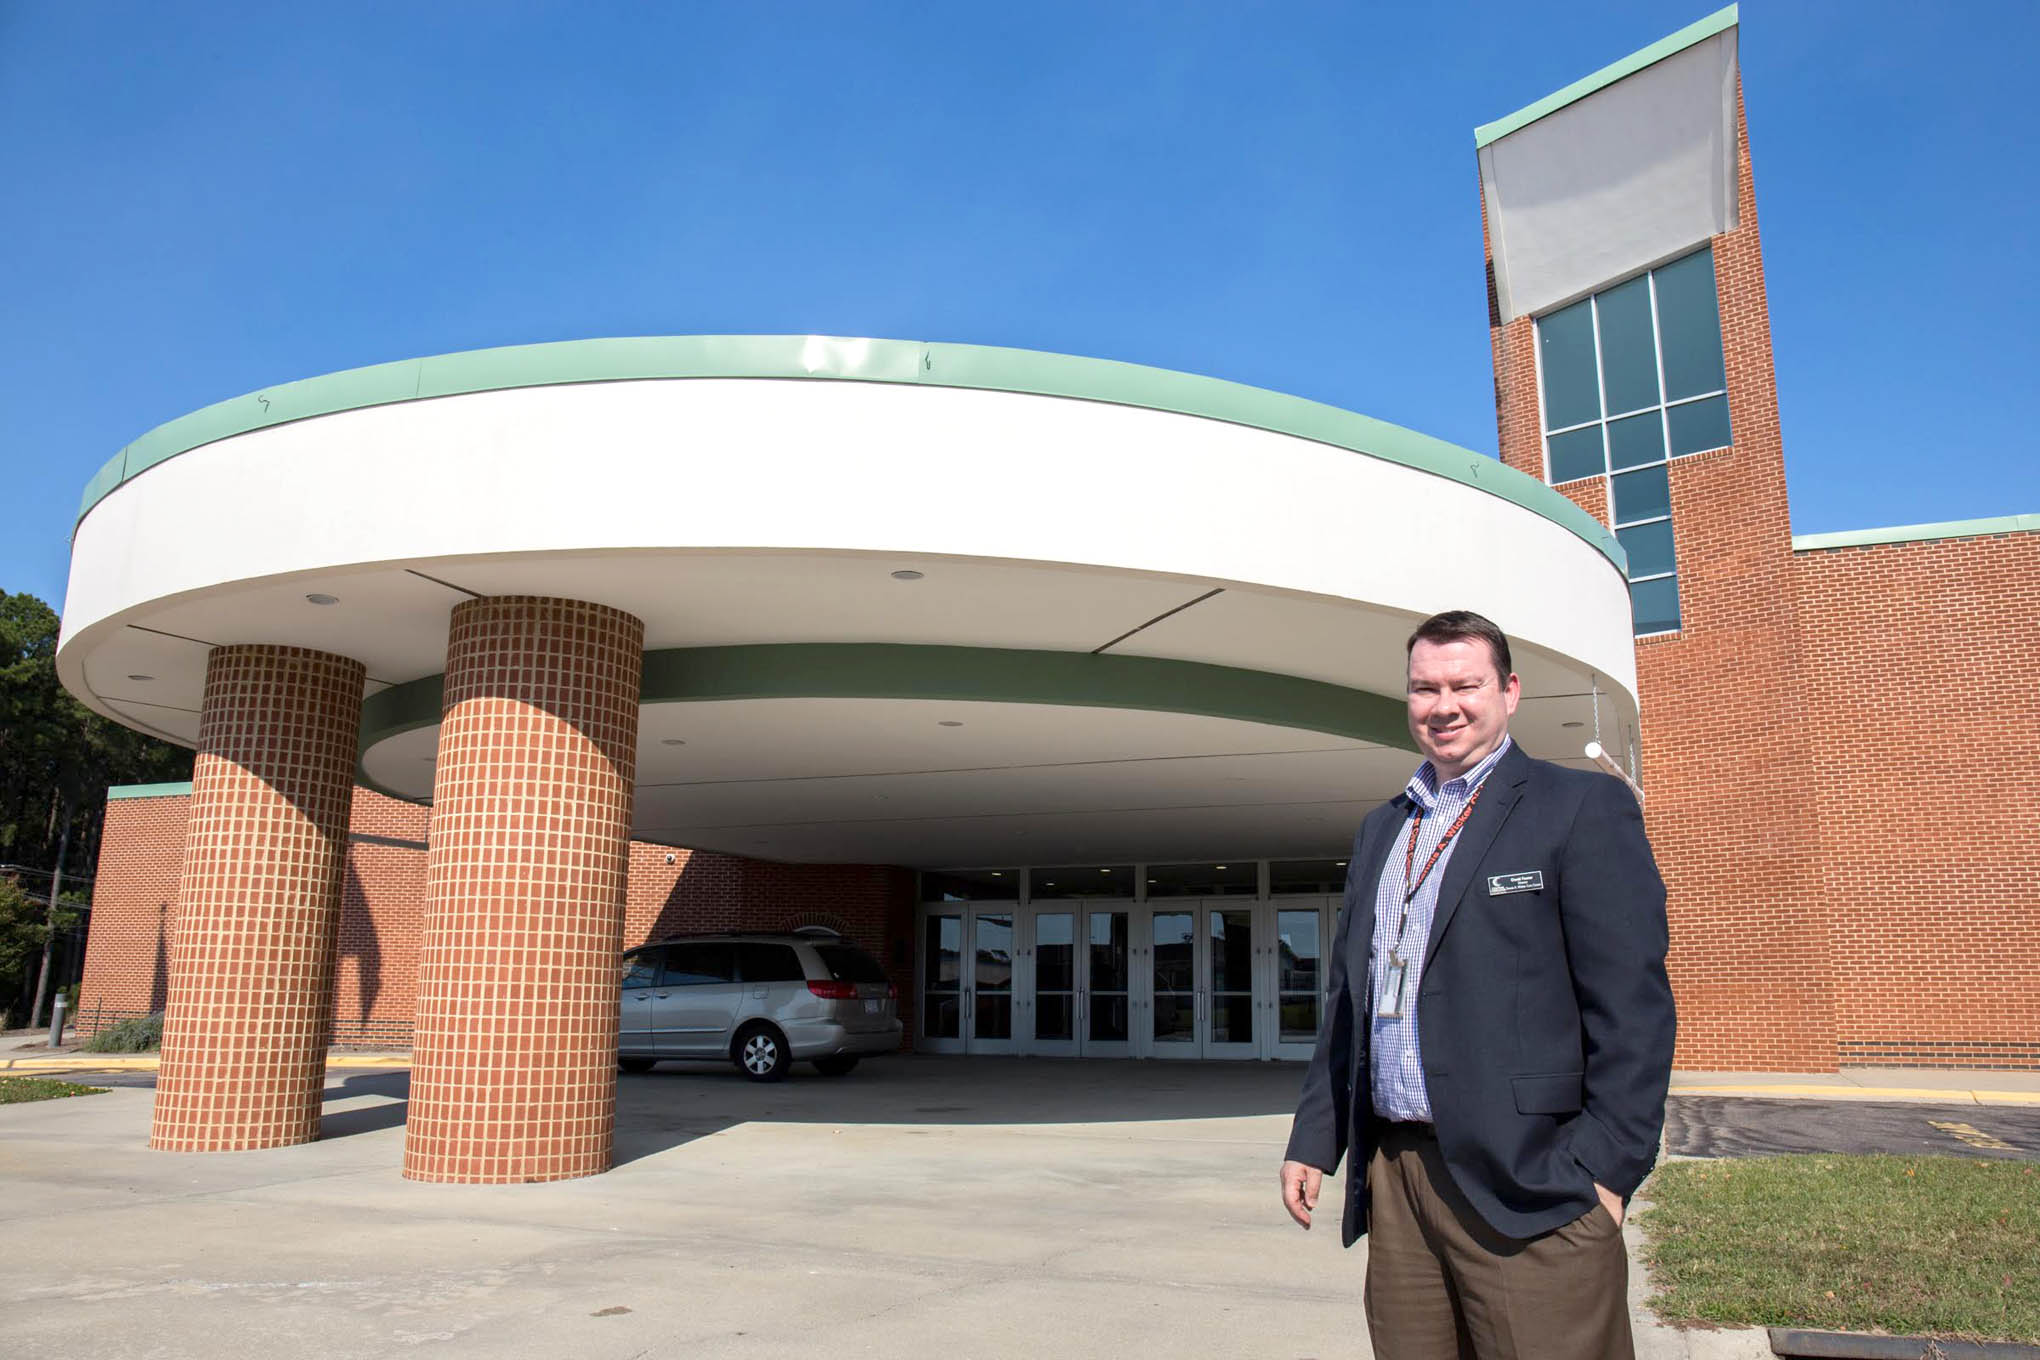 Click to enlarge,  David Foster, director of the Dennis A. Wicker Civic Center, was a student at Lee County Senior High School across the street when the building was being built. Now, he runs operations for the center, which hosts just under 1,000 events a year.